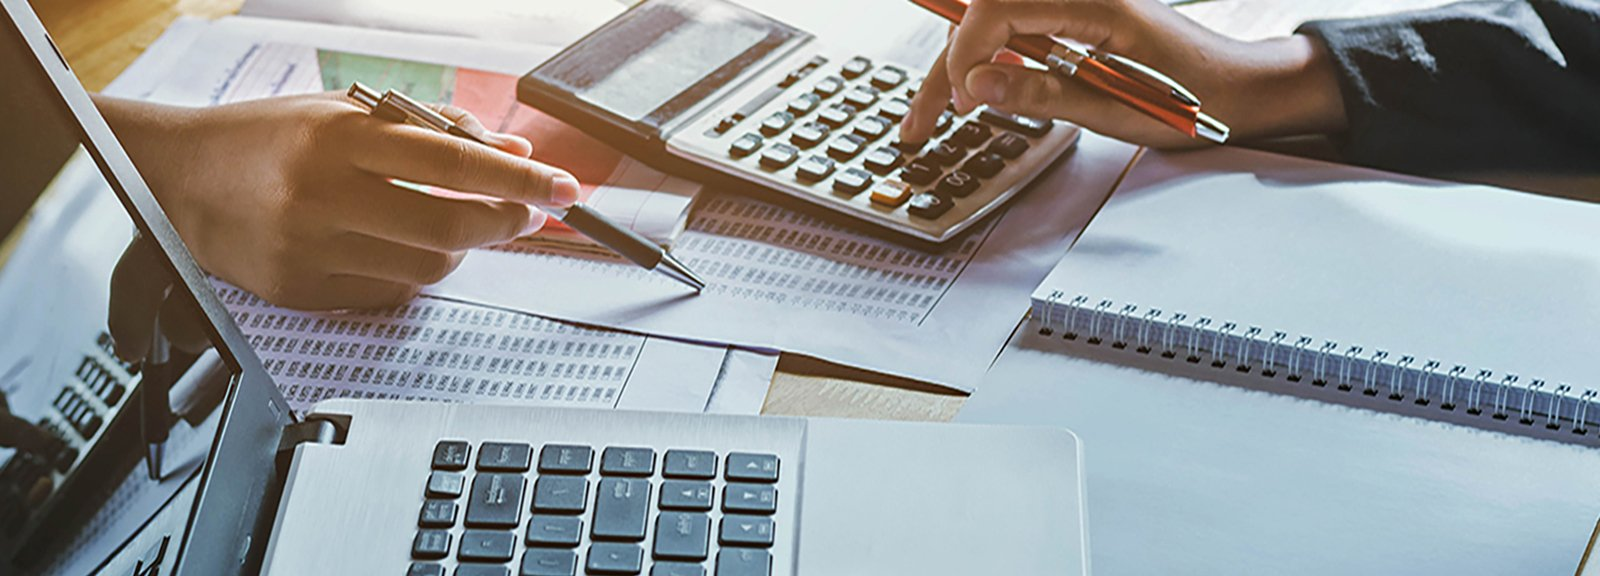 Small Business Accountancy Services in the UK Are Highly Affordable